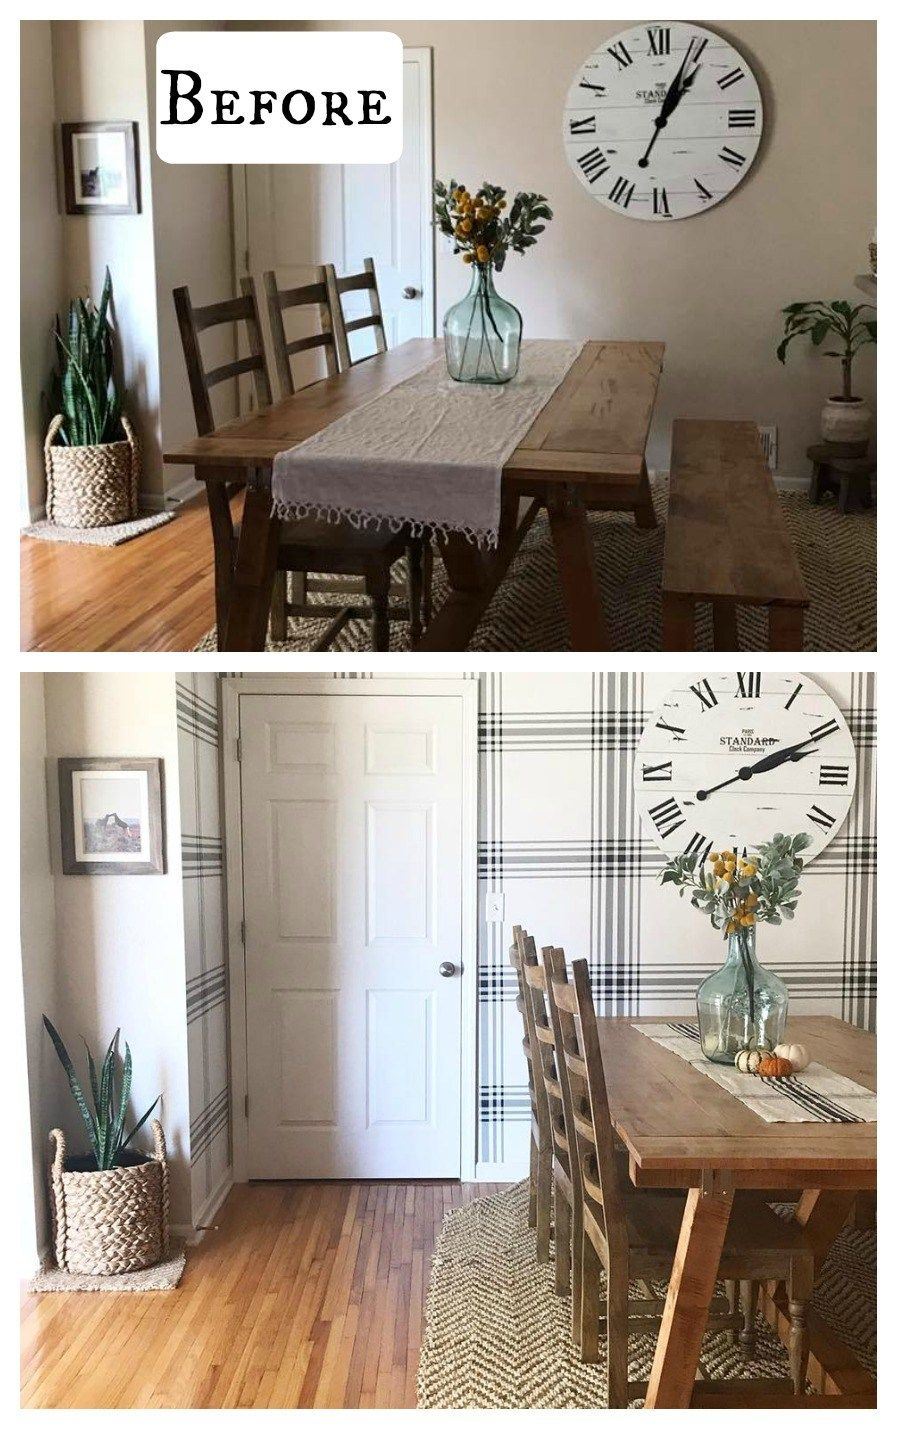 40 Wallpaper Transformations that will Blow you Away!!! - Nesting With Grace